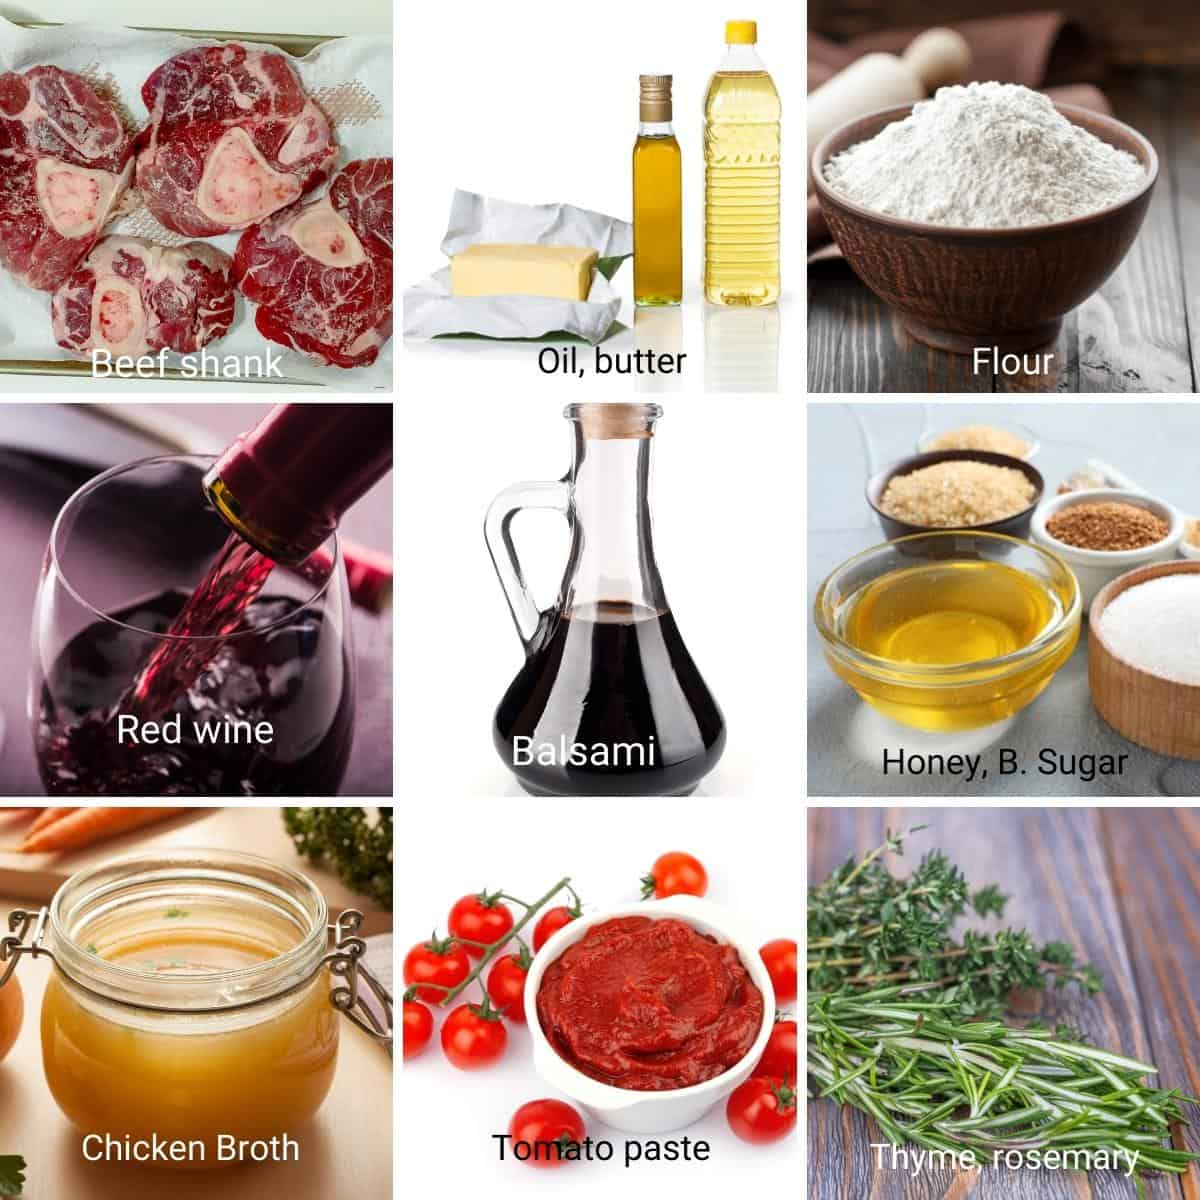 Ingredients for braised osso buco recipe.